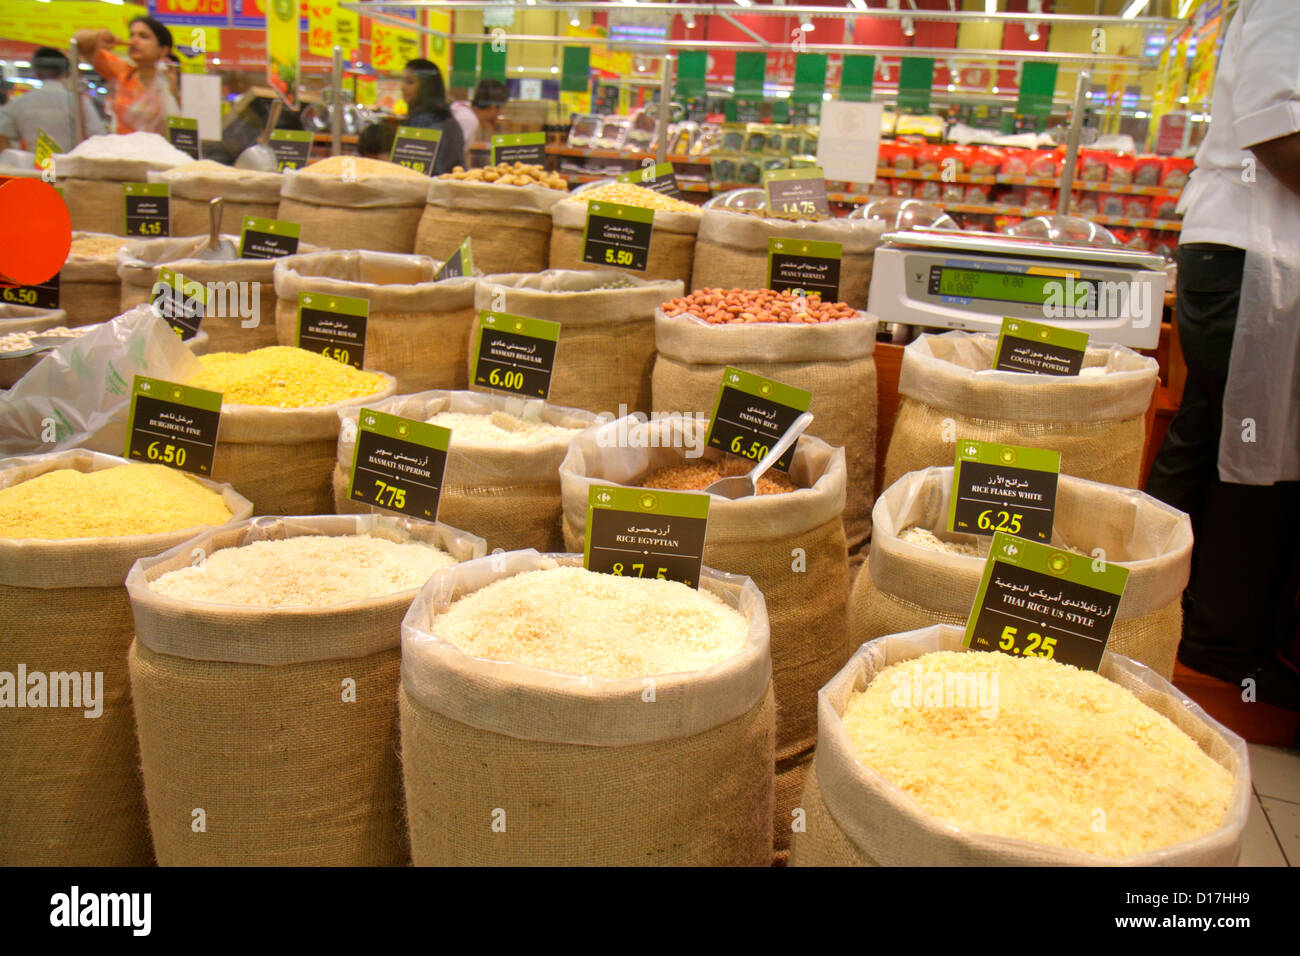 Rice grocery store stock photos rice grocery store stock - Puerto de indias carrefour ...